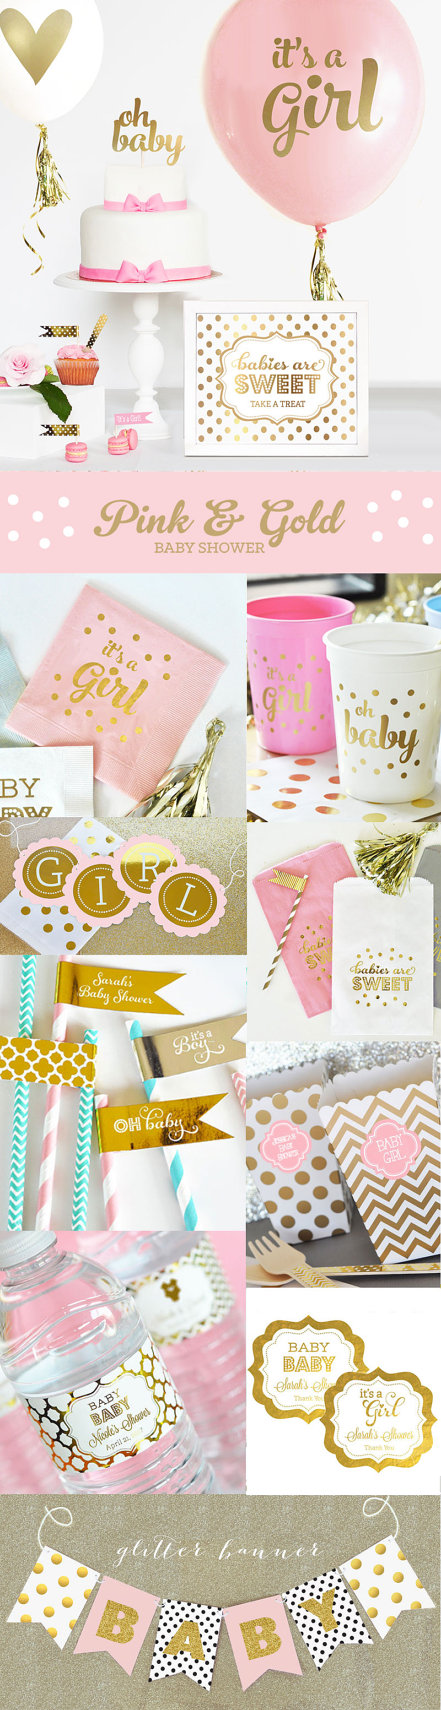 unique baby shower ideas gold glitter baby shower girl baby shower